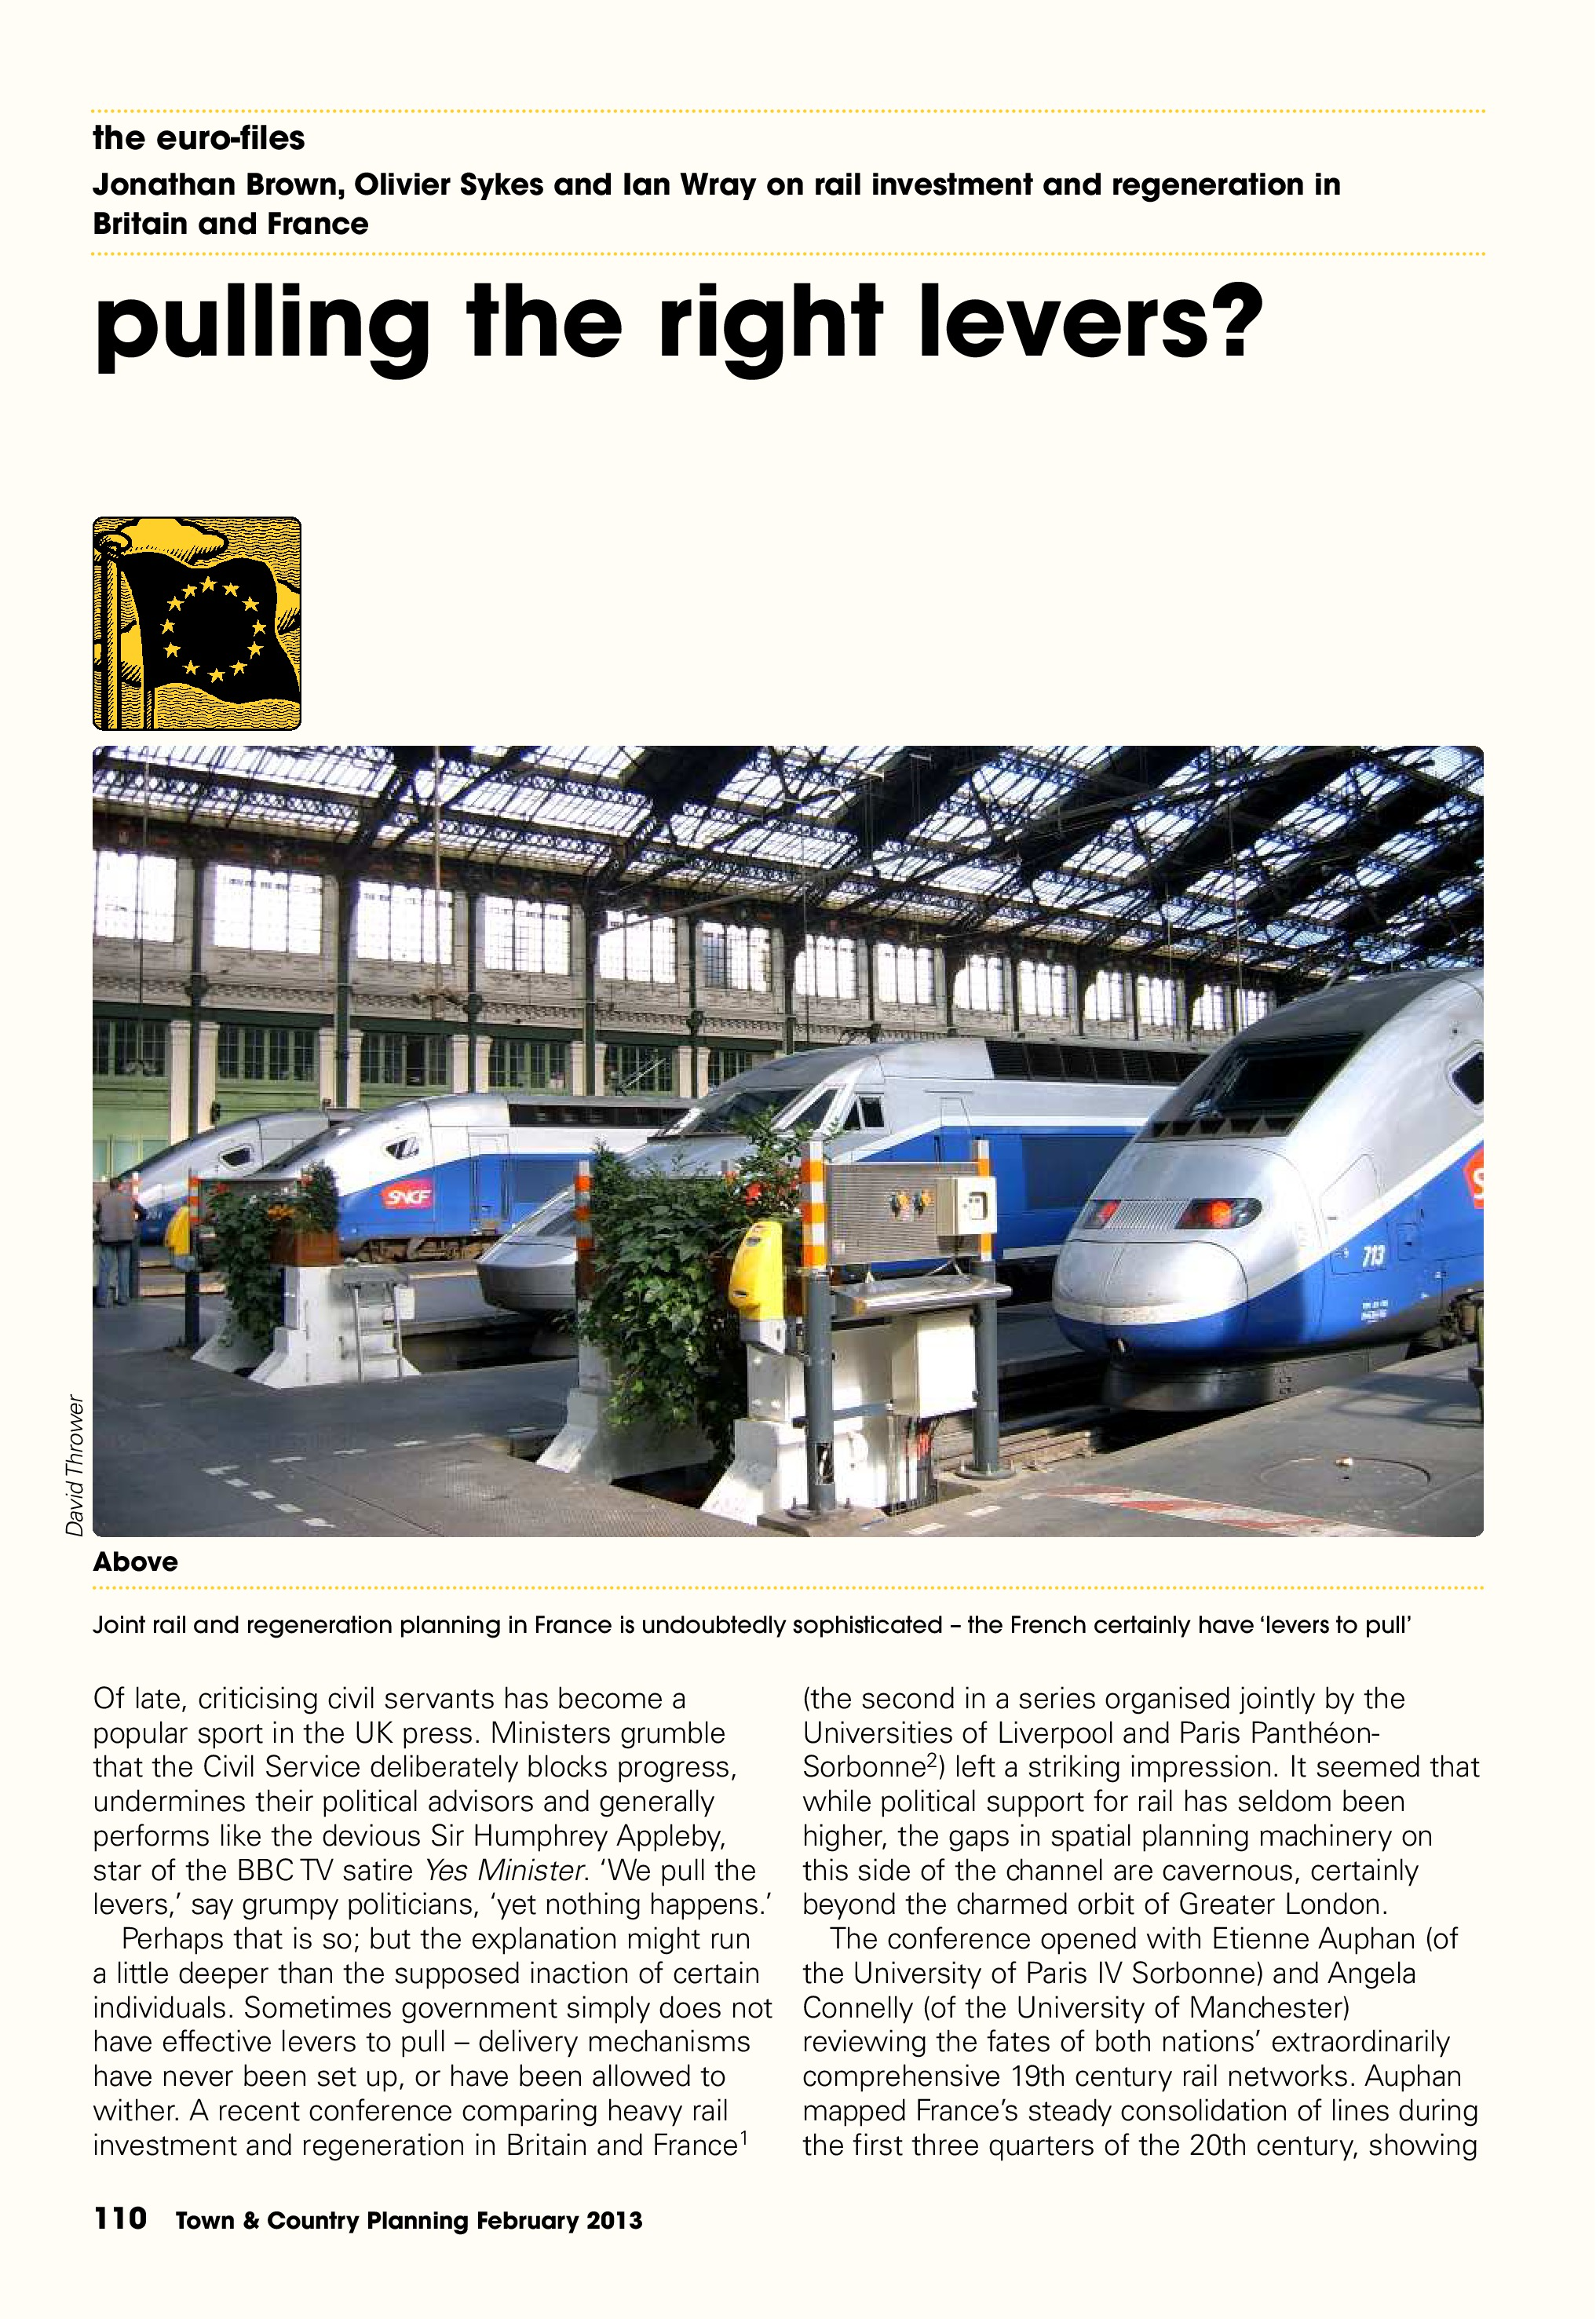 Town & Country Planning Association Journal, February 2013: 'Pulling the Right Levers' - 2nd Liverpool-Paris Rail Group Conference, p1/6